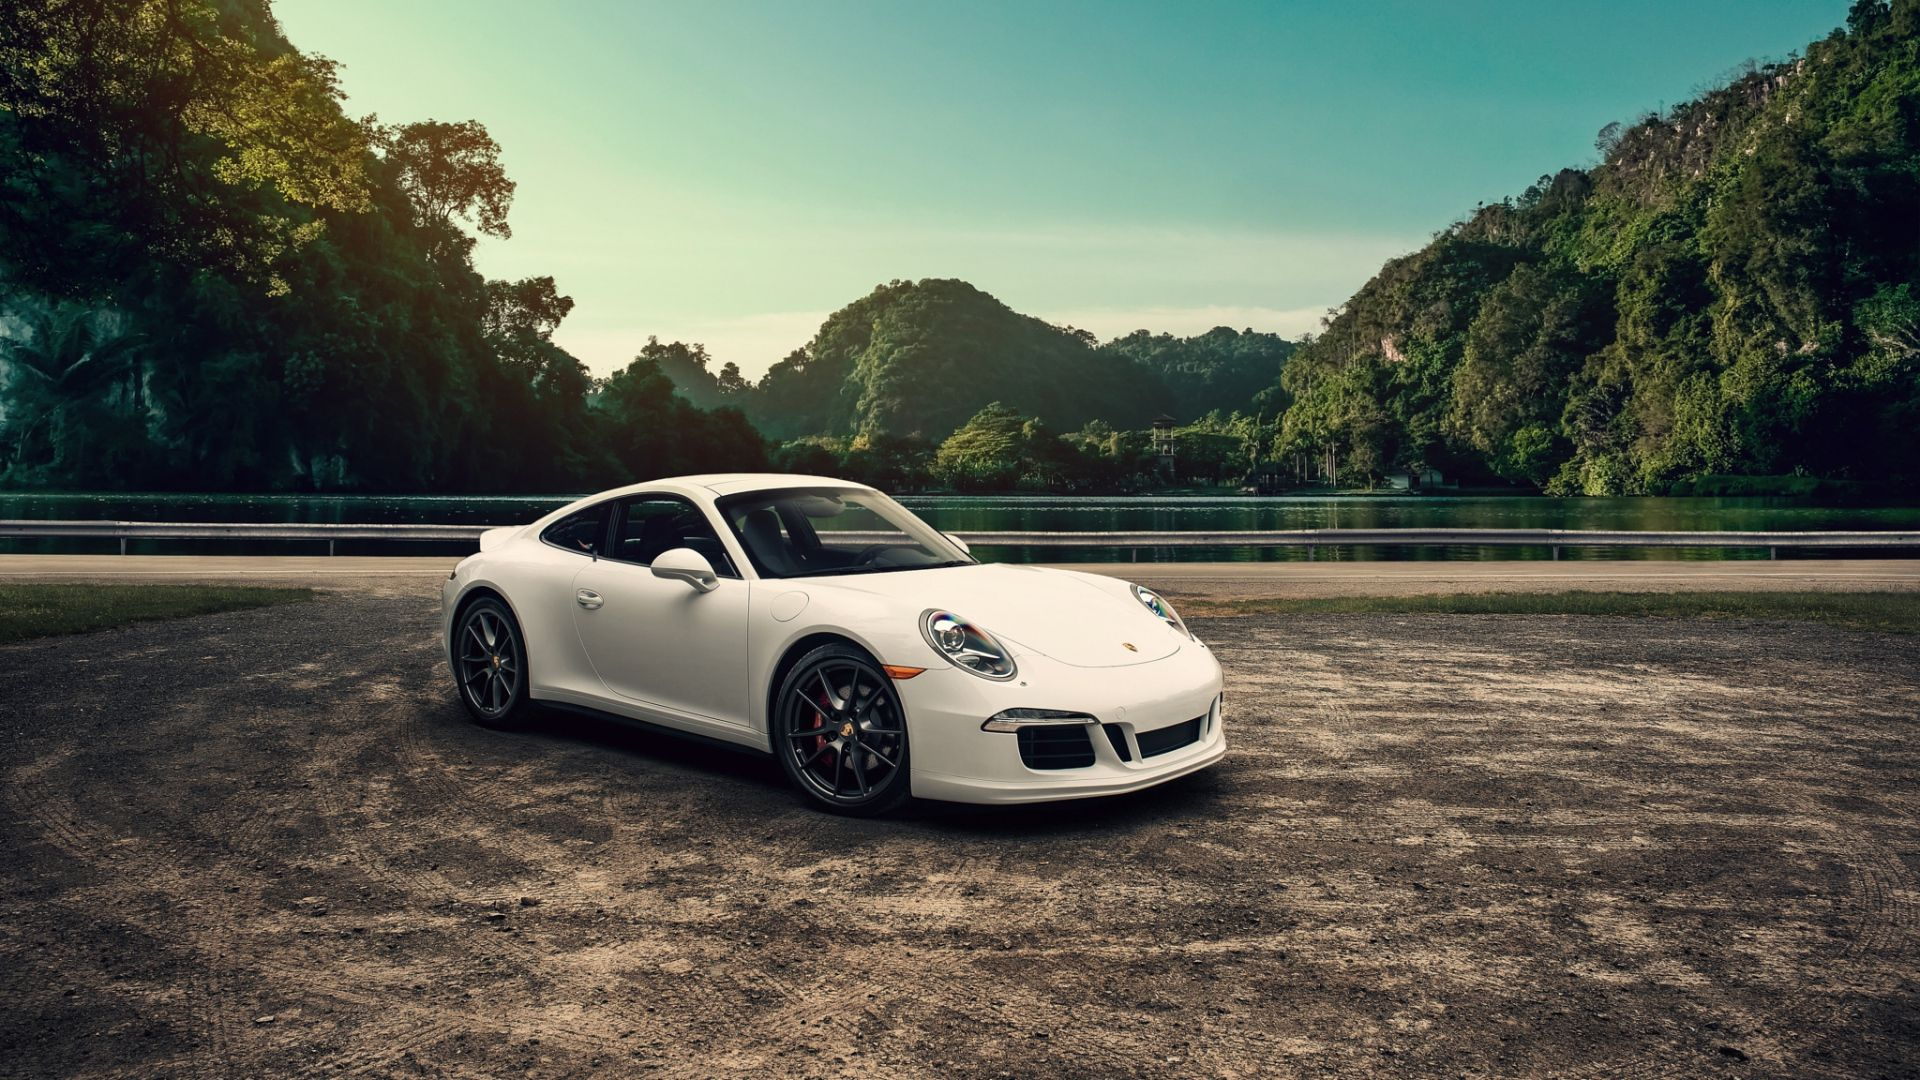 Porsche Porsche 911 Carrera 4s Hd Wallpapers Of Cars Porsche